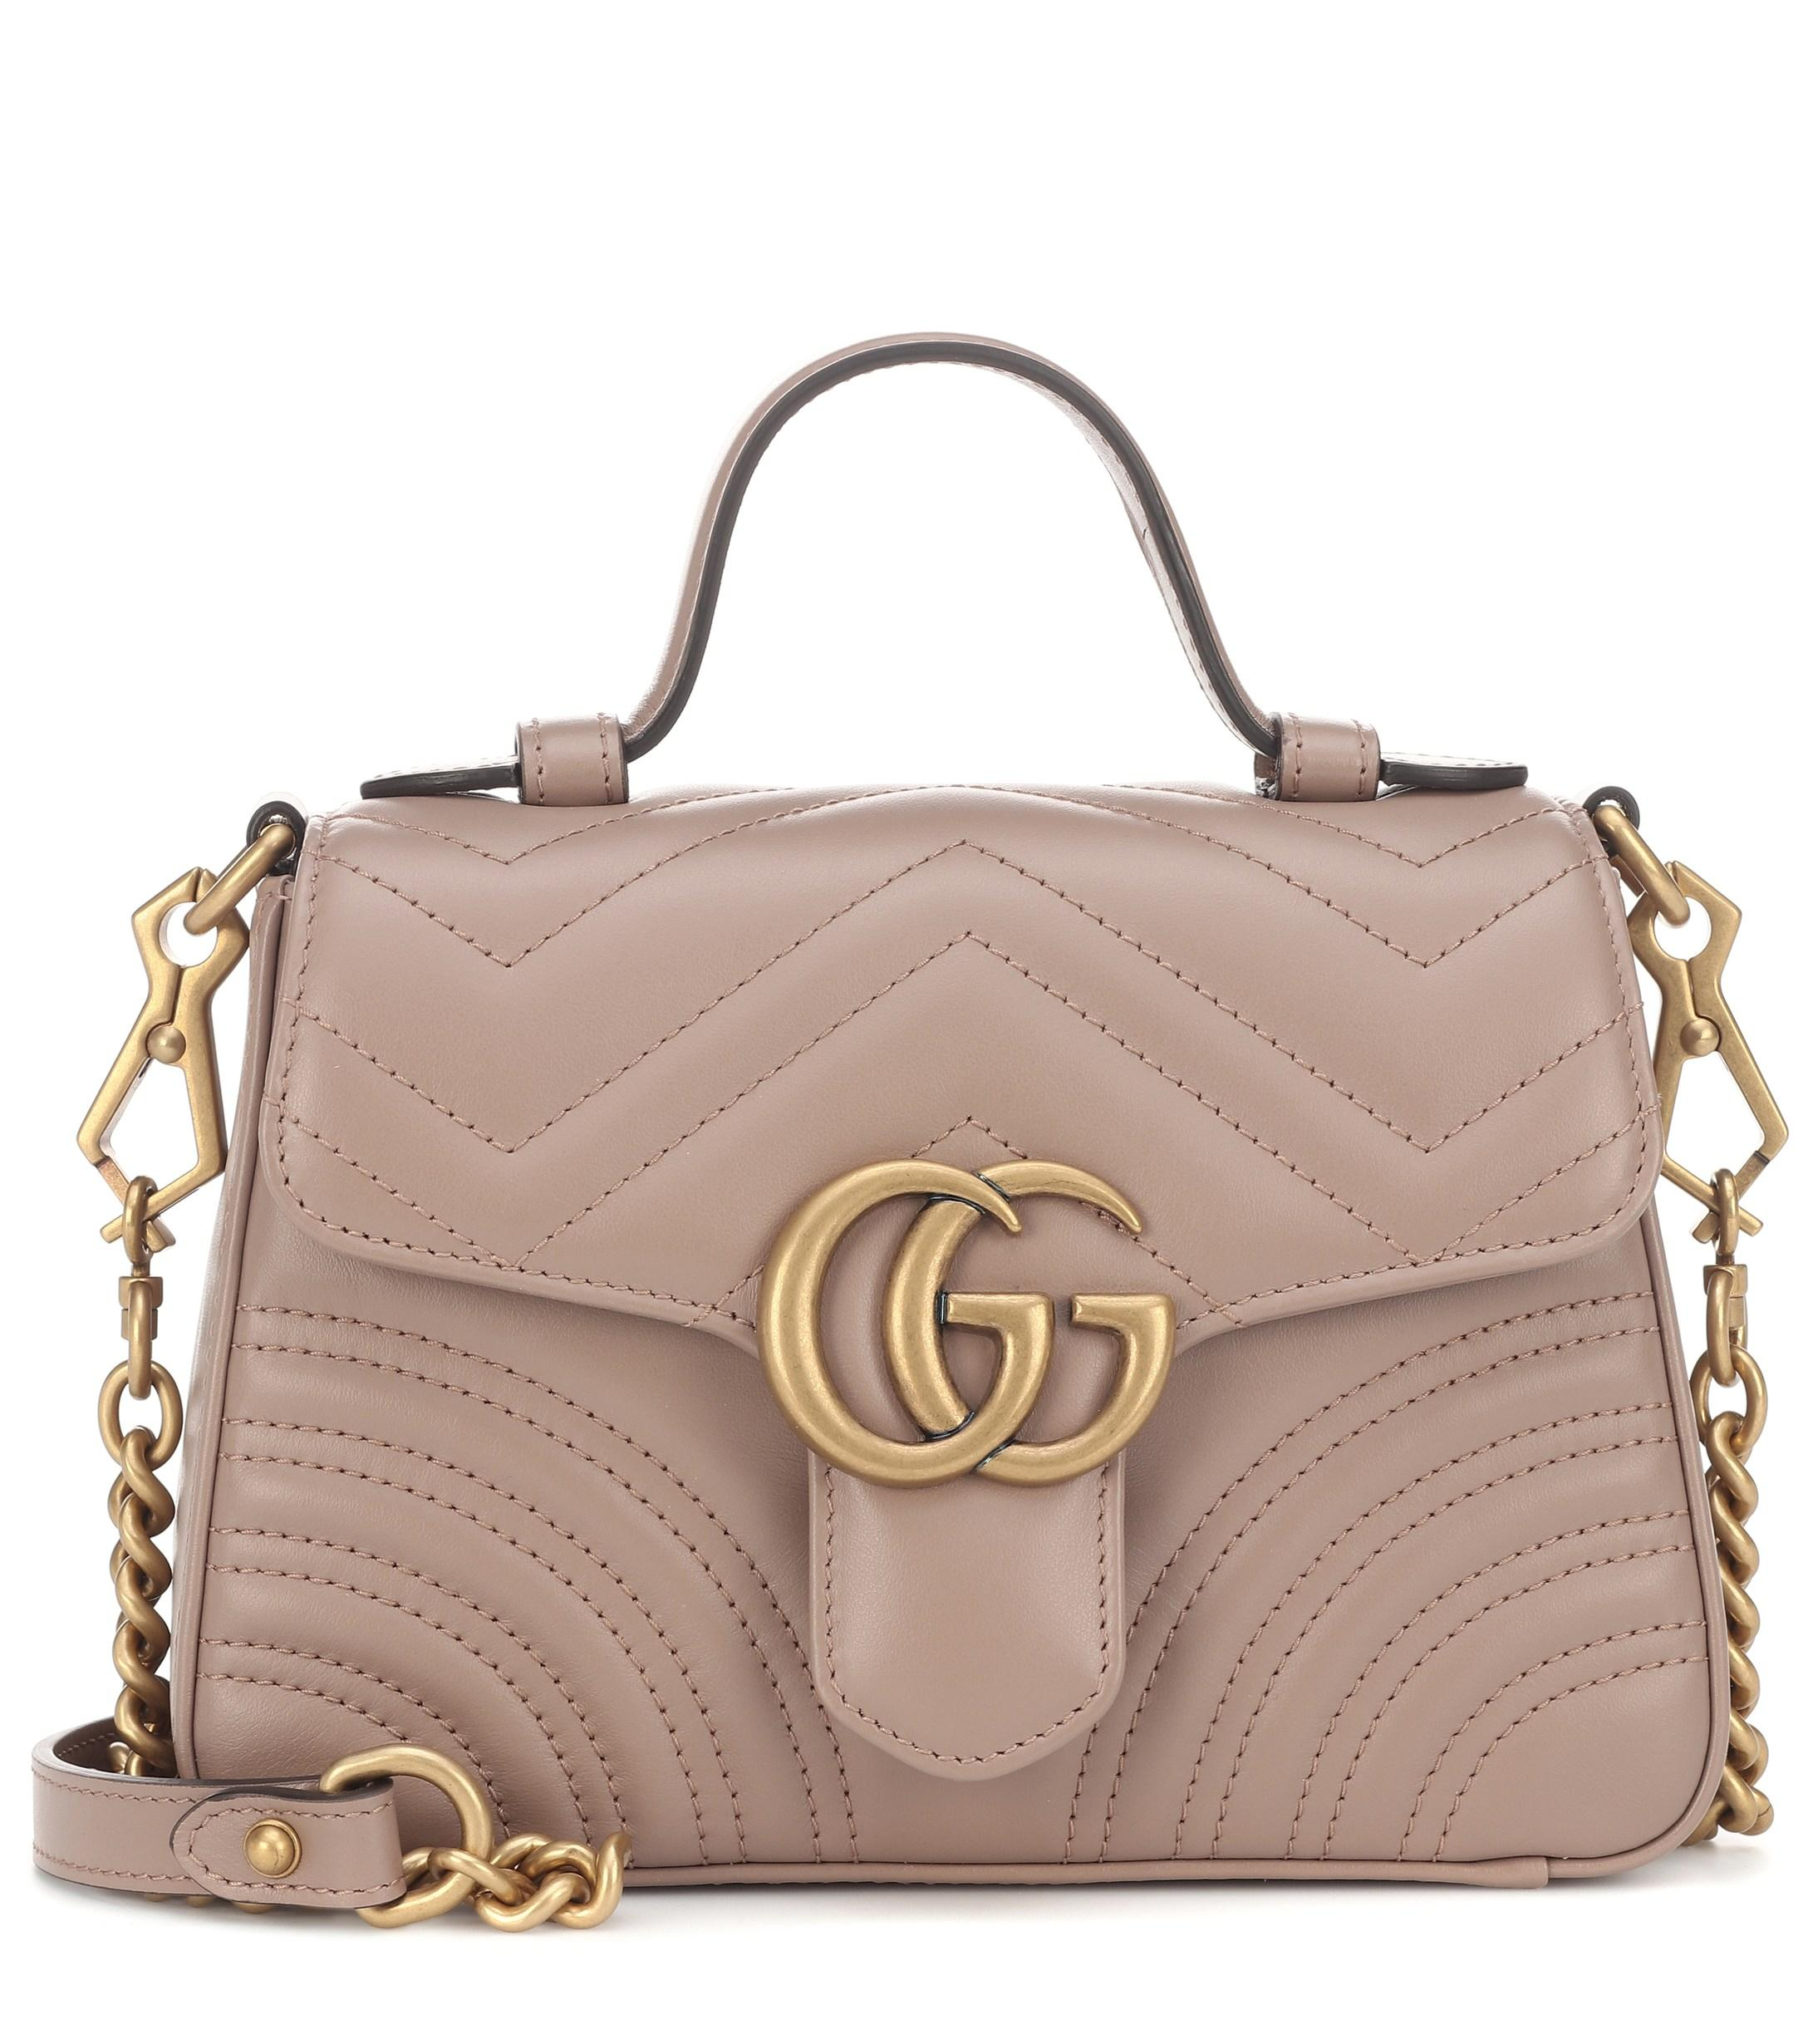 1849c510499e Gucci GG Marmont Mini Top Handle Bag Porcel Rose in Natural - Save ...